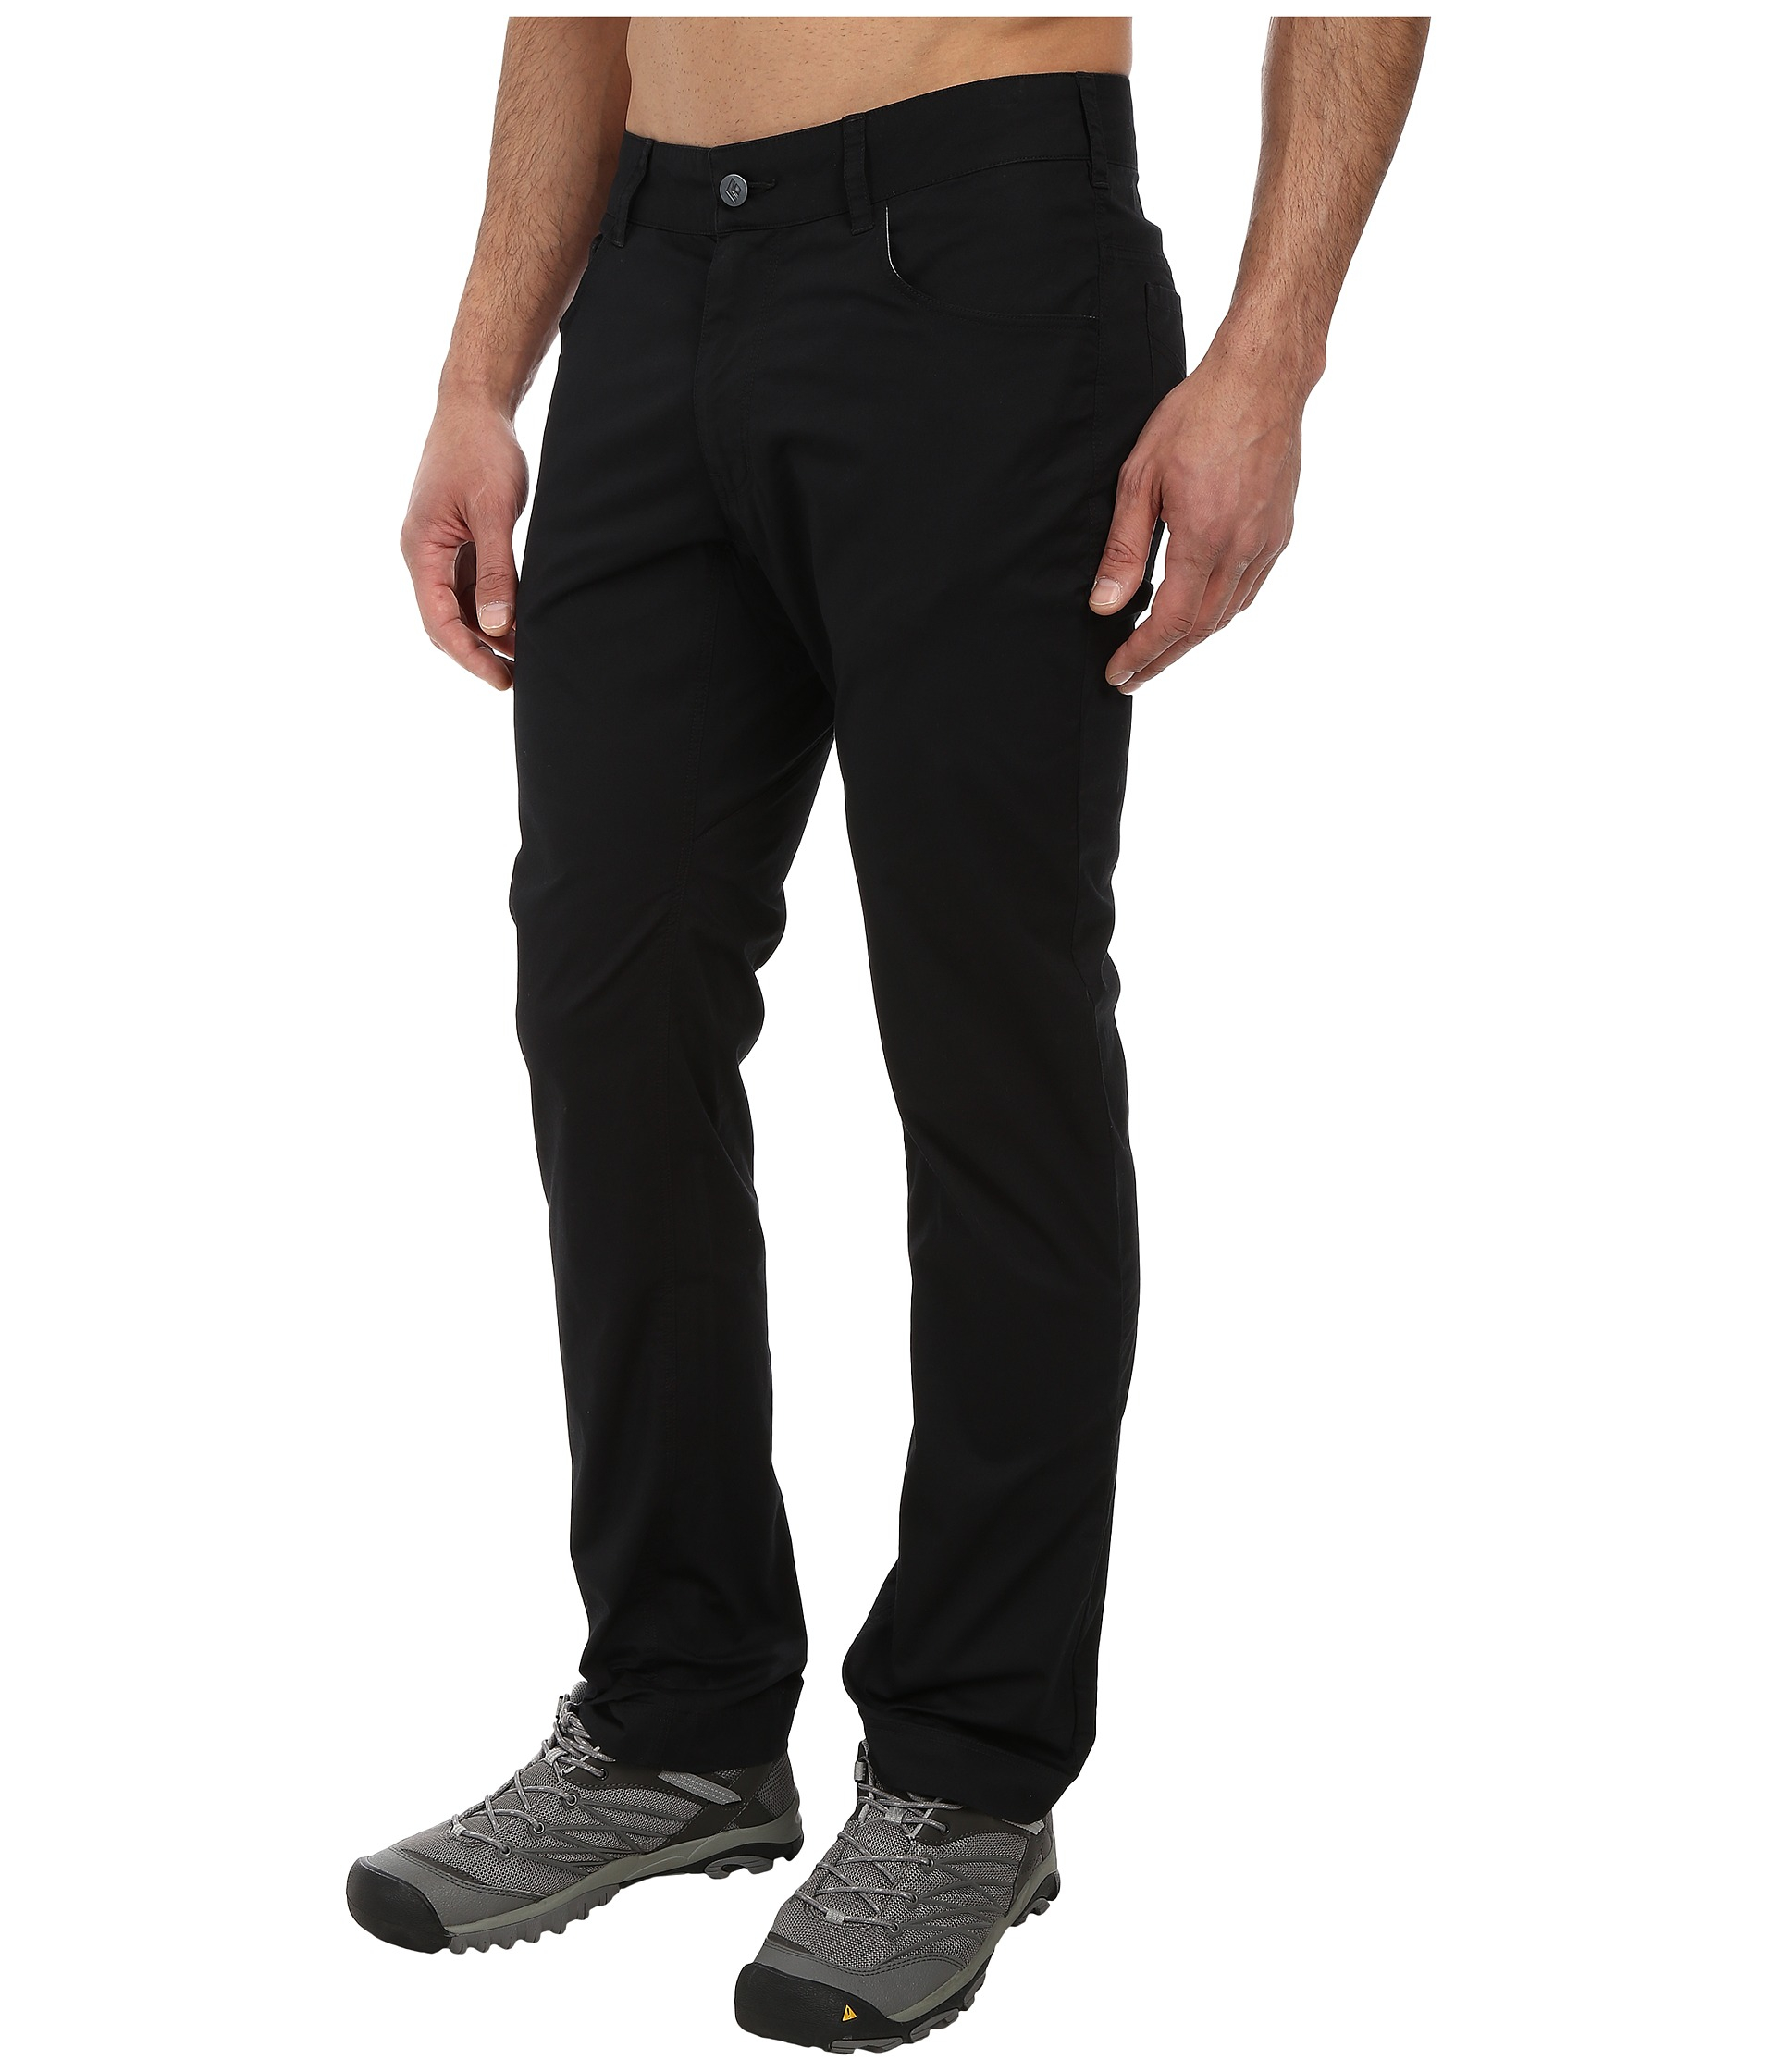 5205dd77433bfe Black Diamond Stretch Font Pants in Black for Men - Lyst